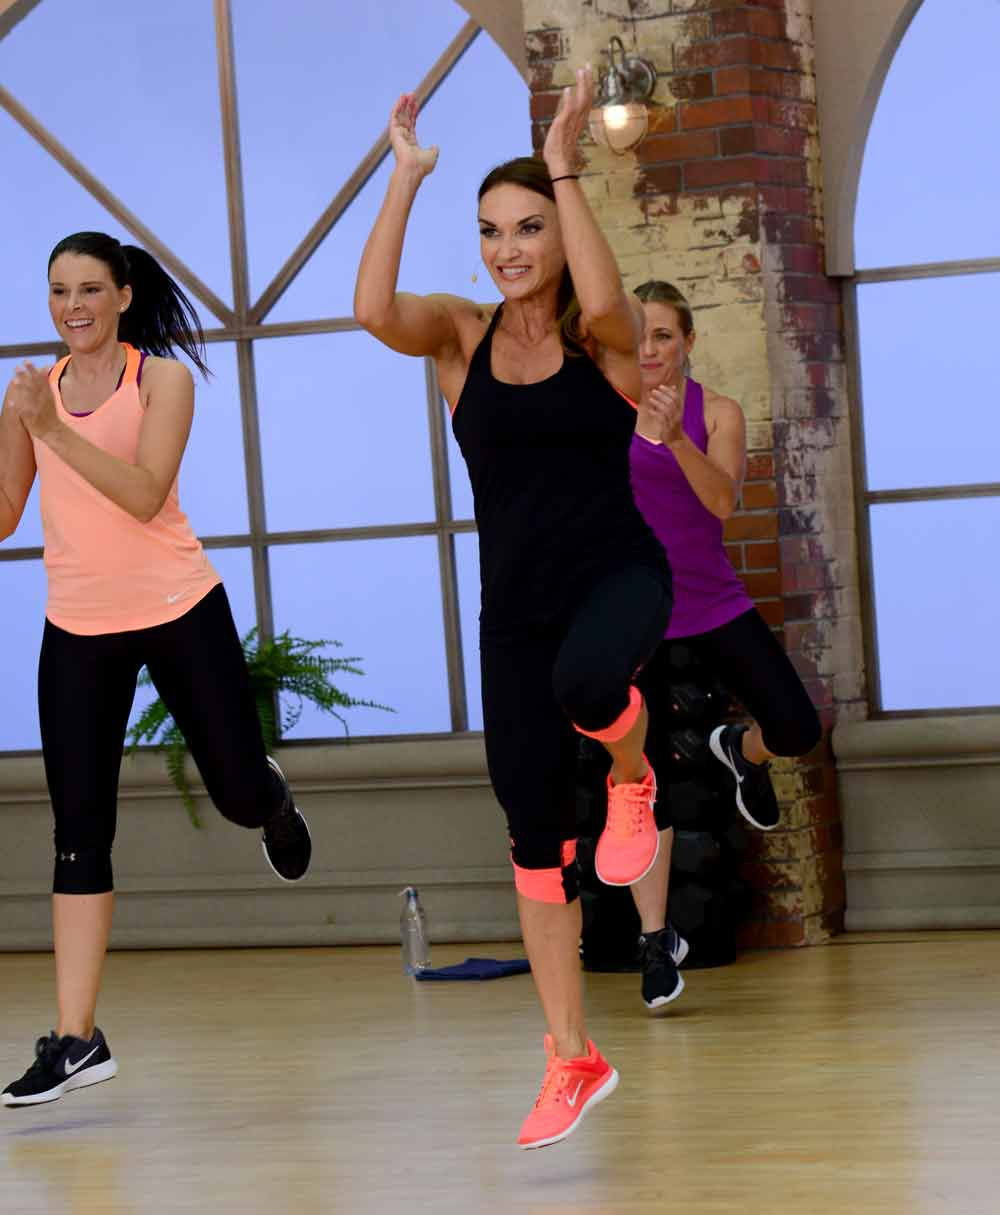 image of Cathe, Jenn and Brenda doing high intensity interval training in Fit Split Mixed Impact Cardio & Pull Day. HIIT training was one of the hottest fitness trends last year. What do you think will be the the top fitness trends for 2018?